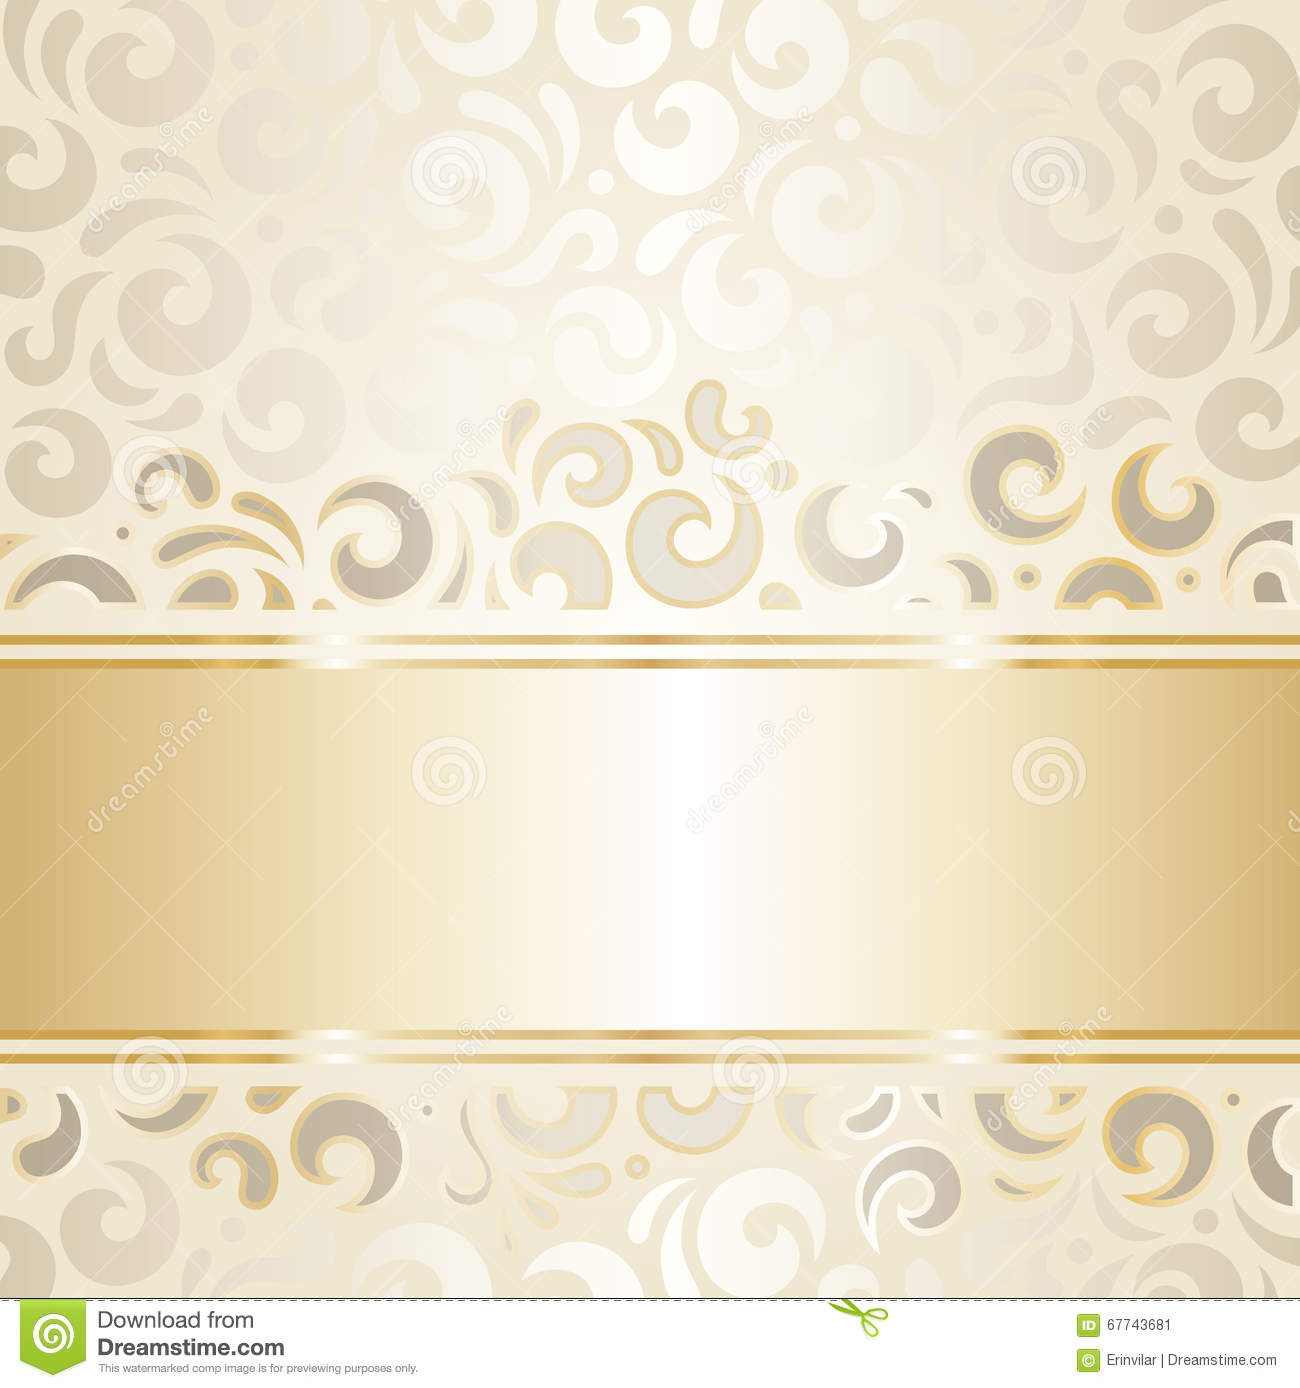 Retro Wedding Wallpaper Design Ecru Gold